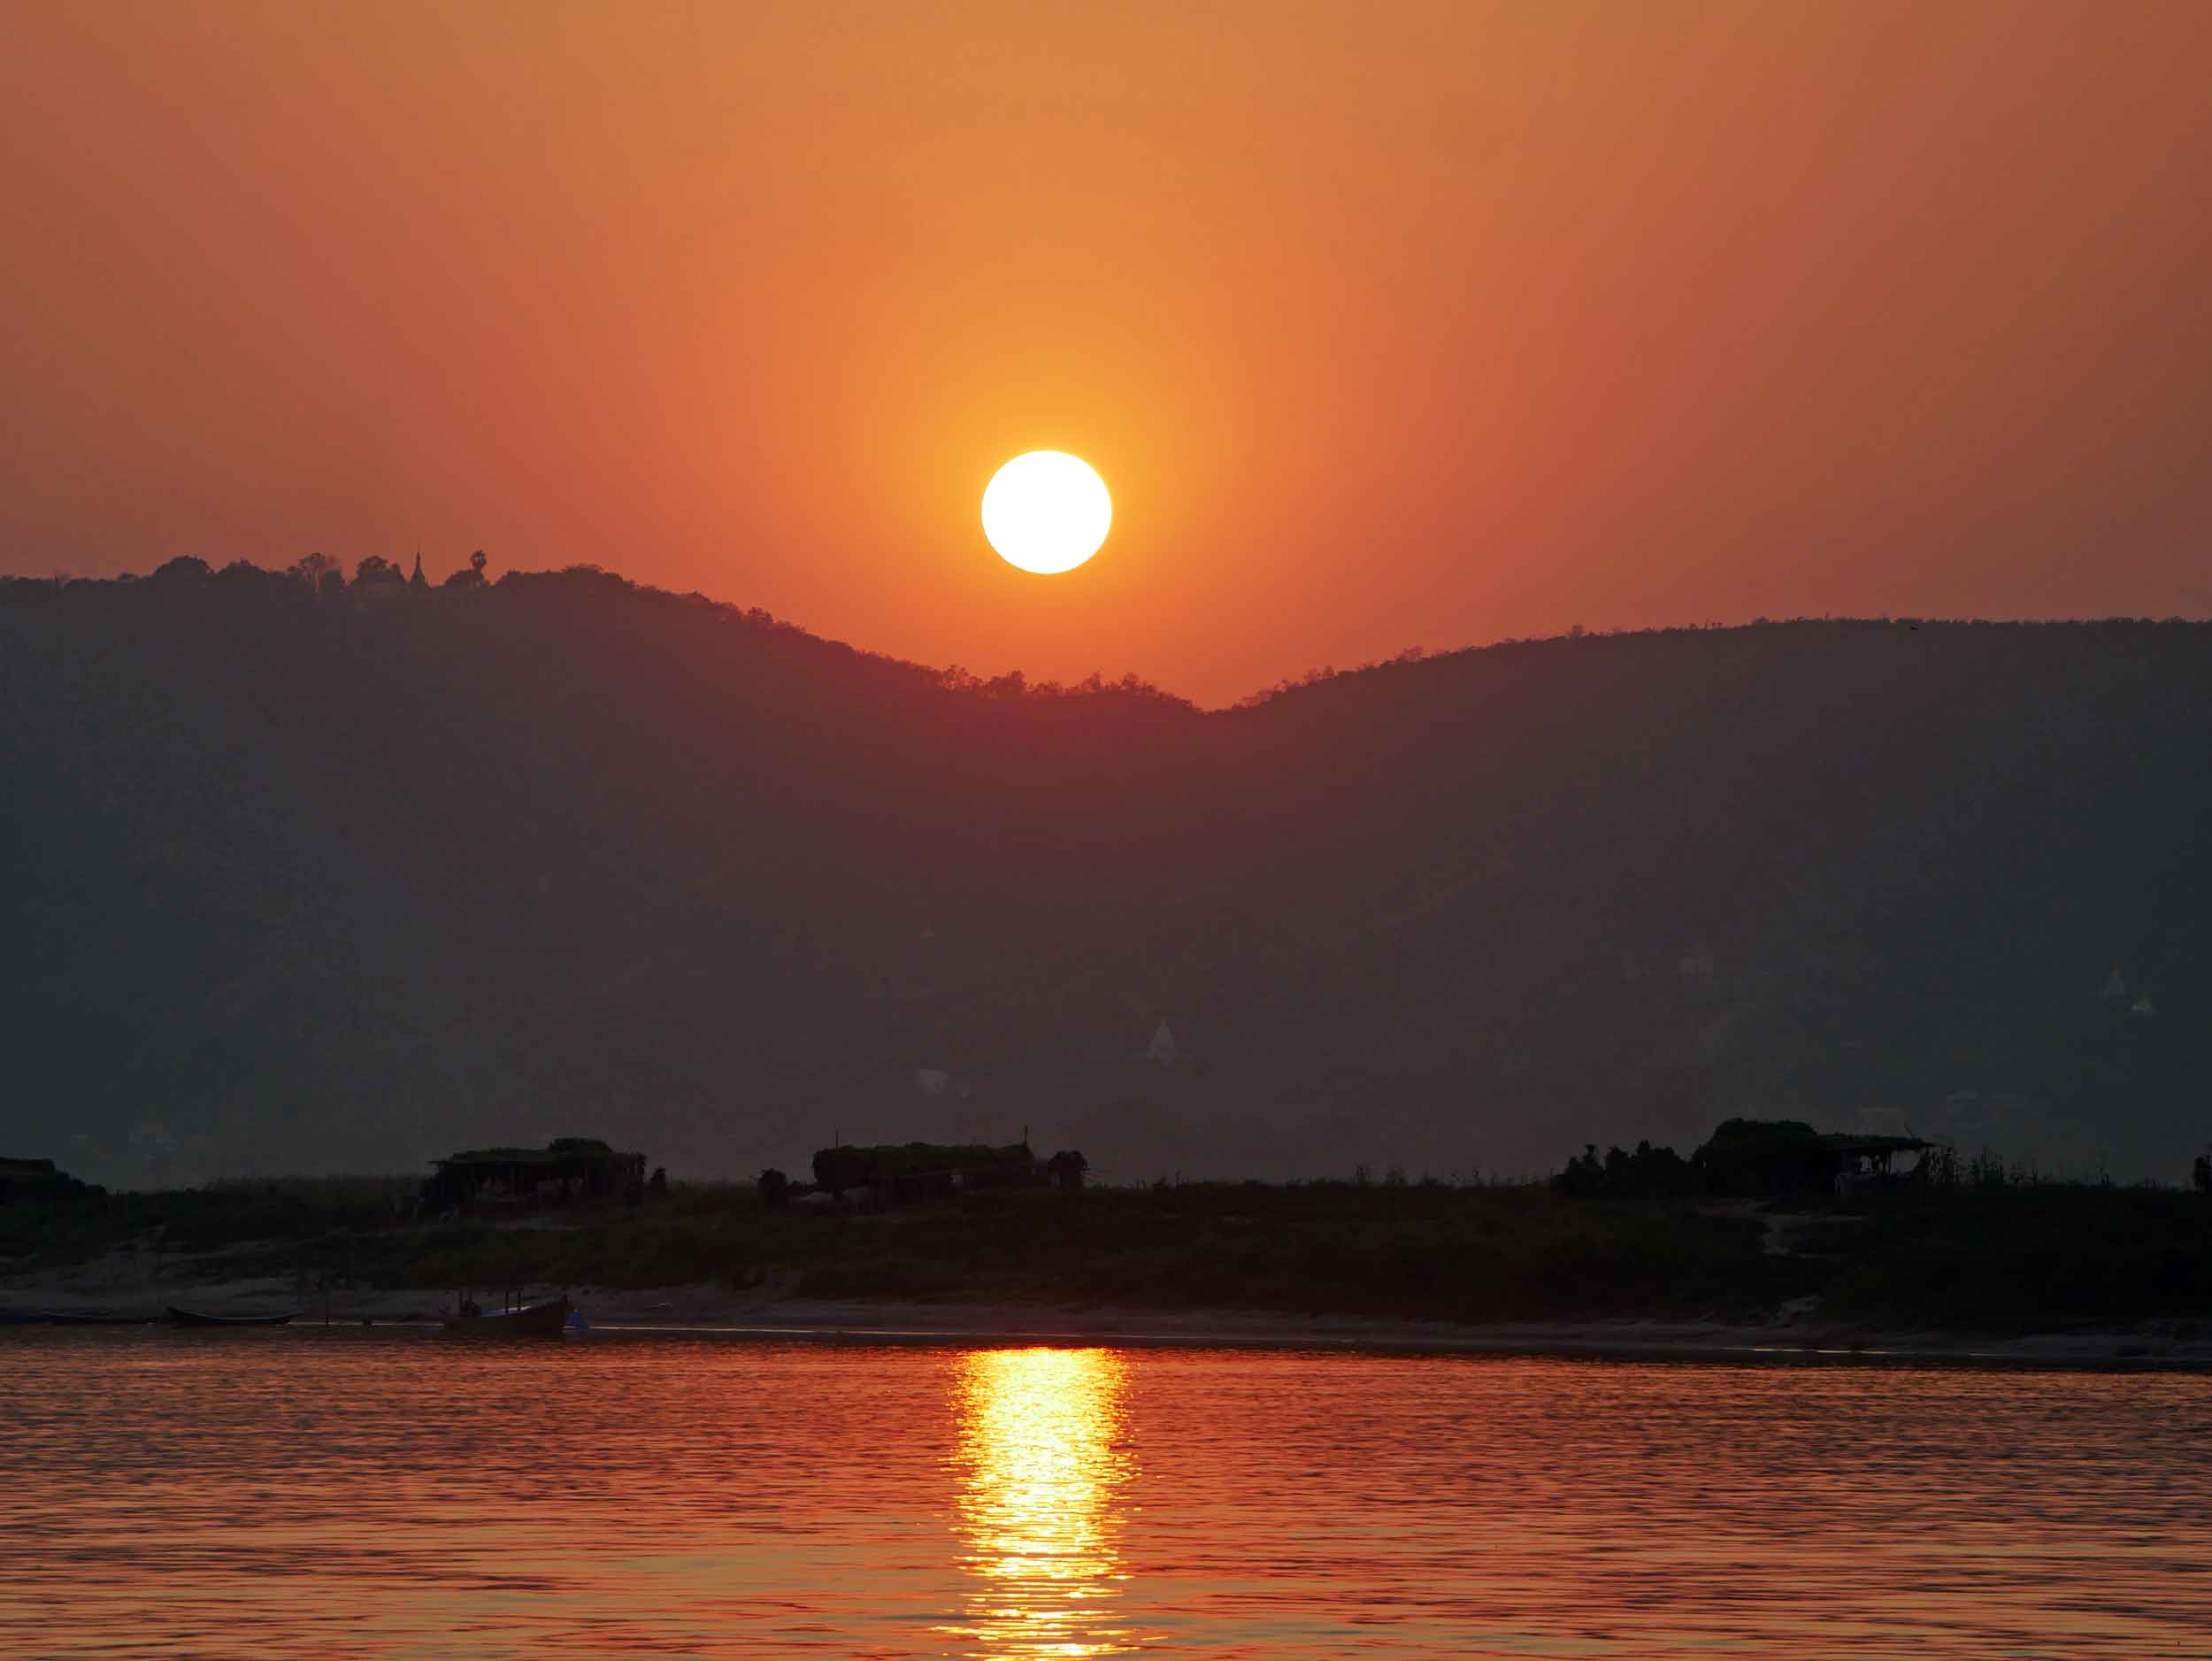 In this golden land, the Irrawaddy provides an excellent location to take in sunset (Feb 17).